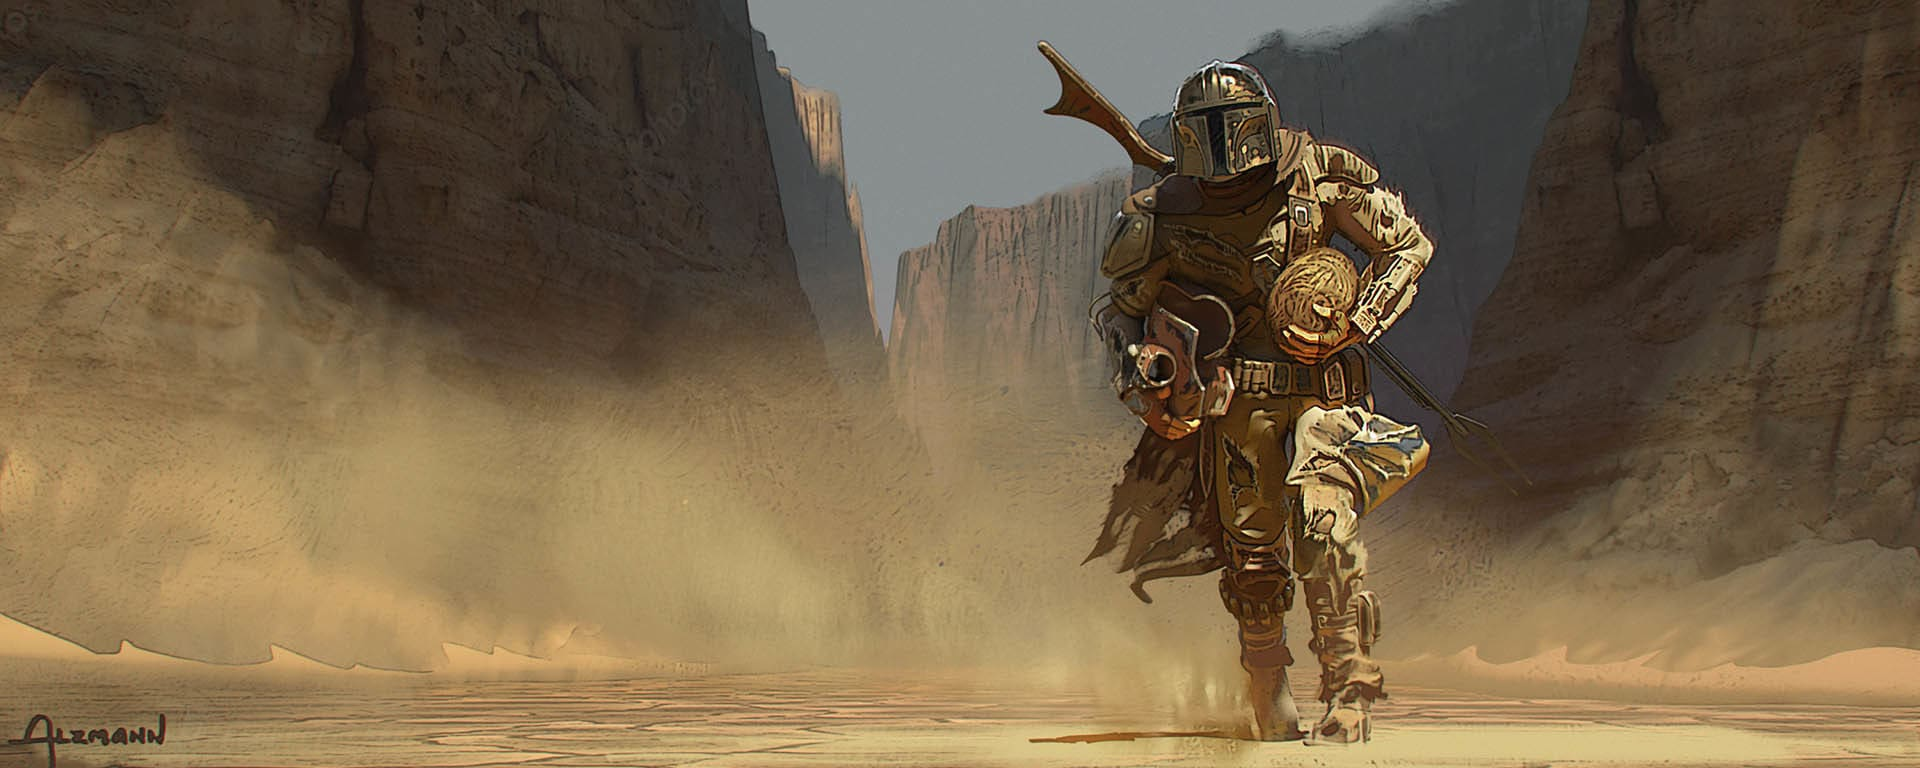 The Mandalorian: Chapter 2 Concept Art Gallery